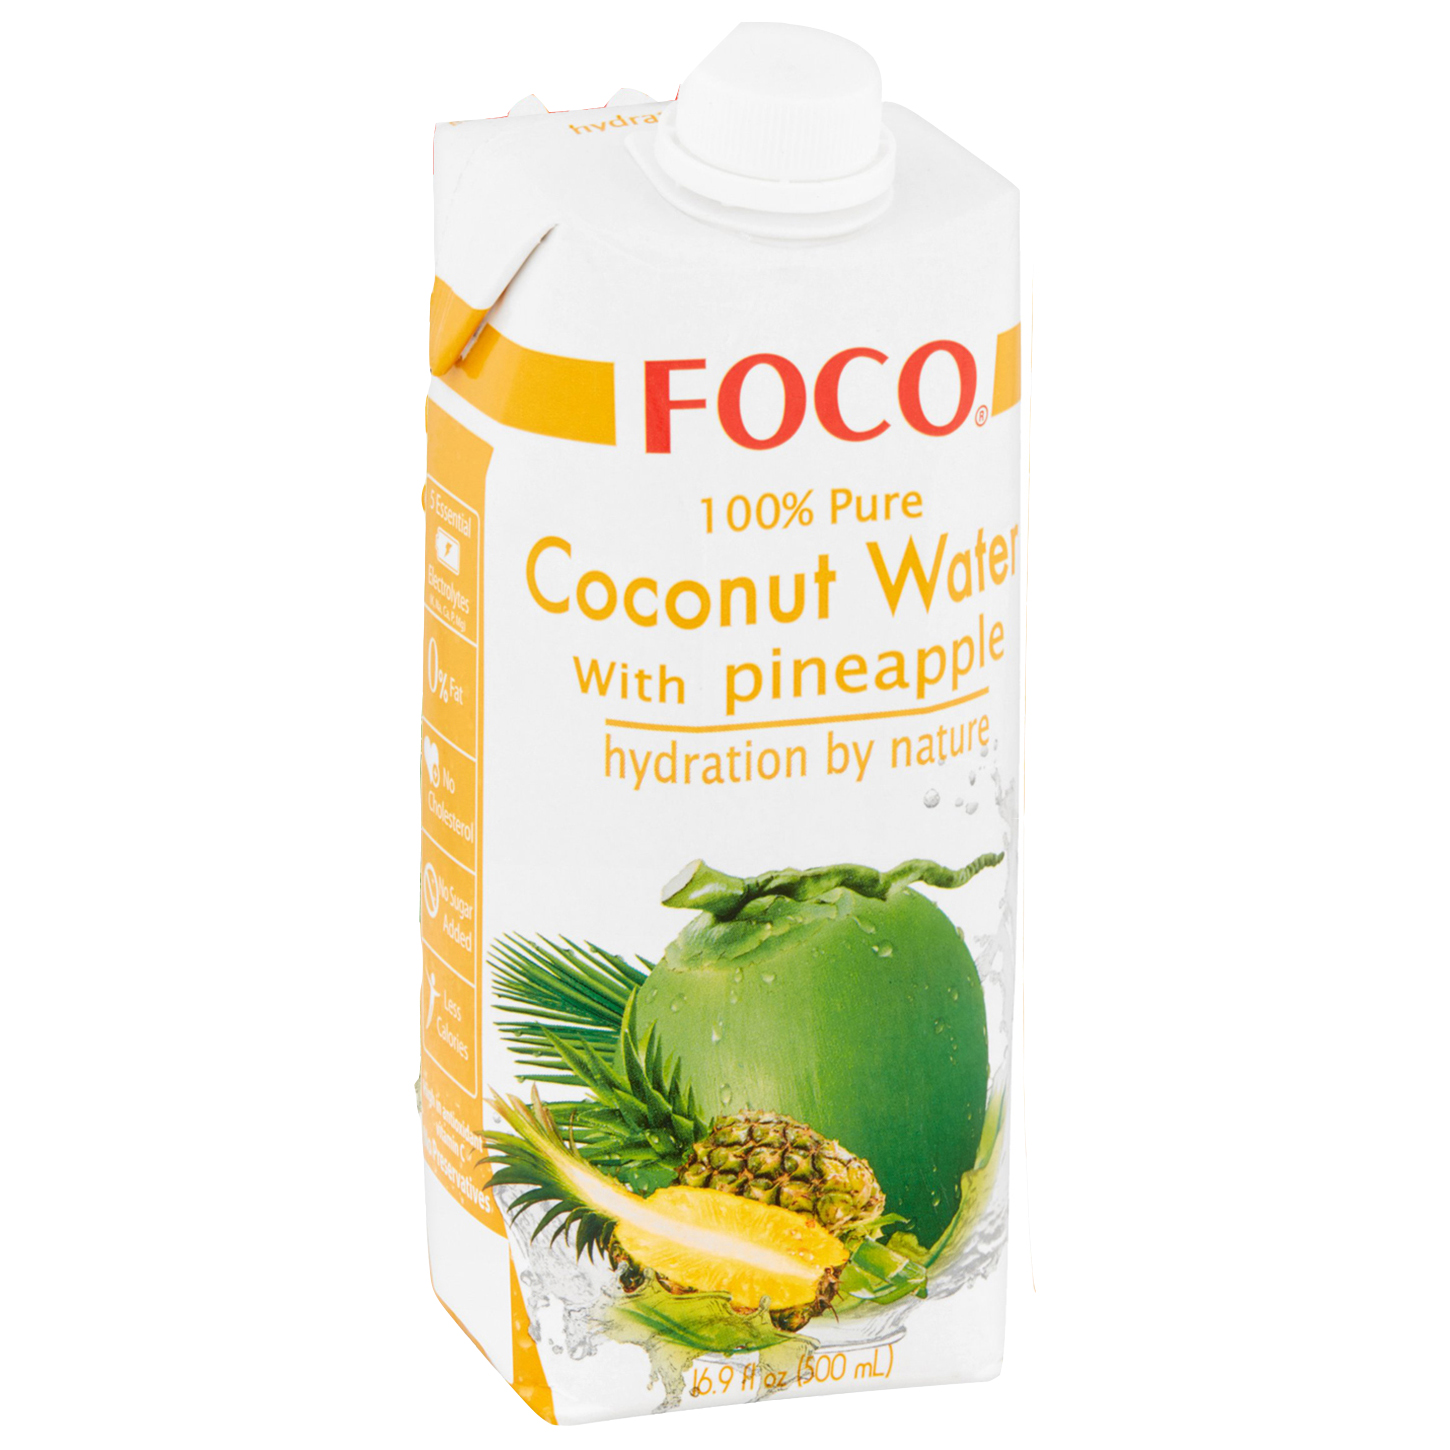 Foco 100% Pure Coconut Water, Pineapple, 16.9 Fl Oz, 1 Count